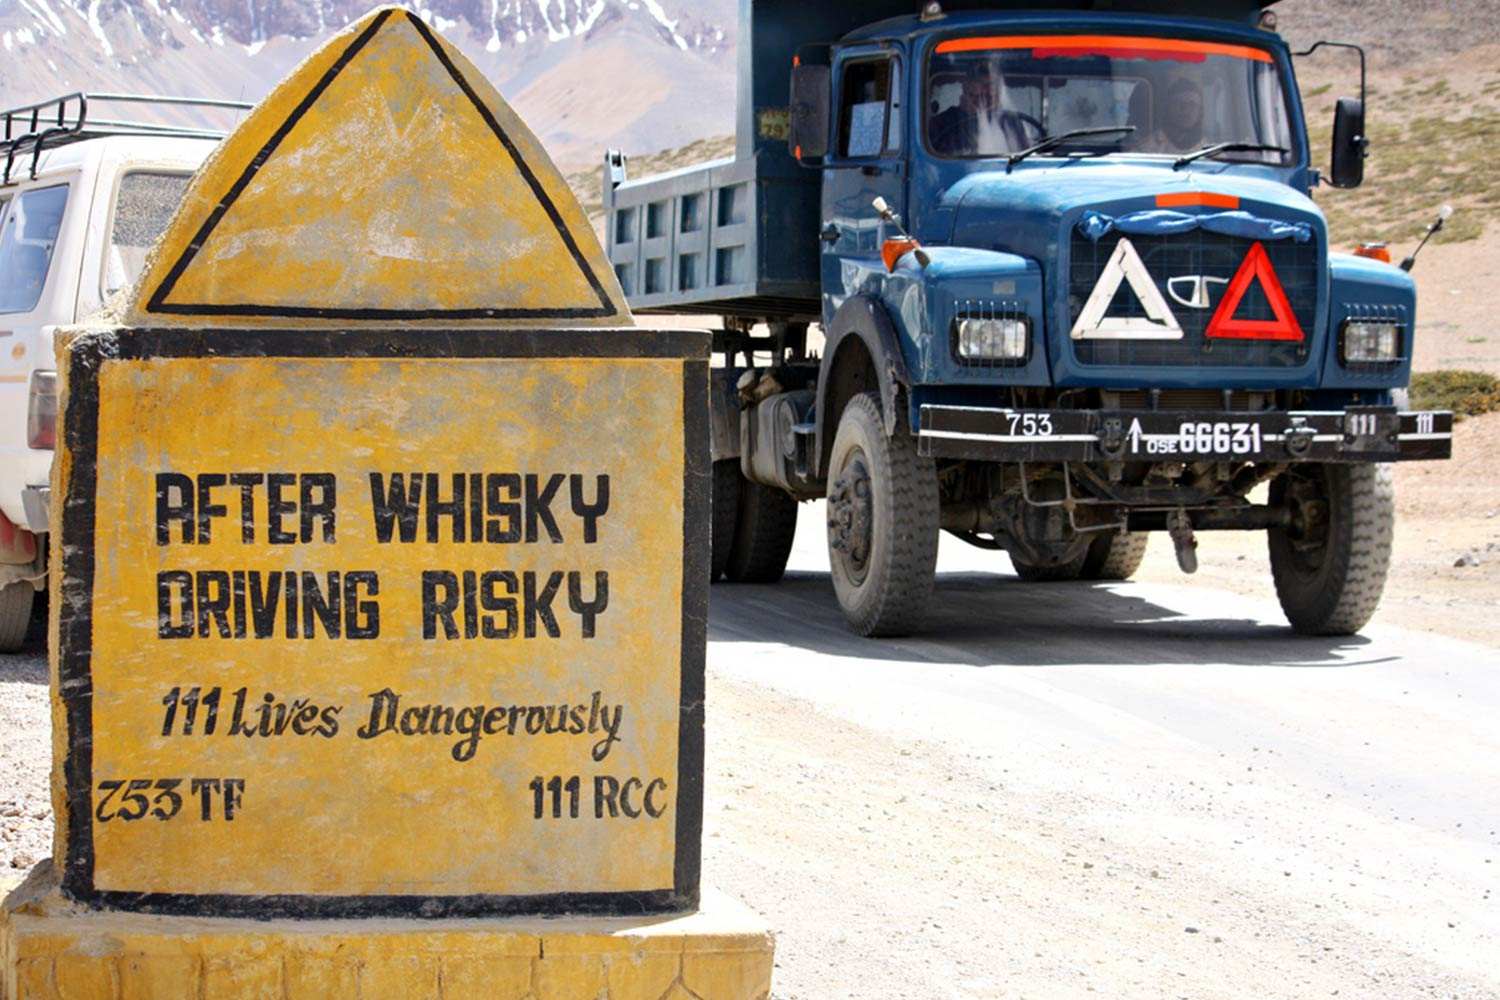 Funny Signboards-after whisky drving risky